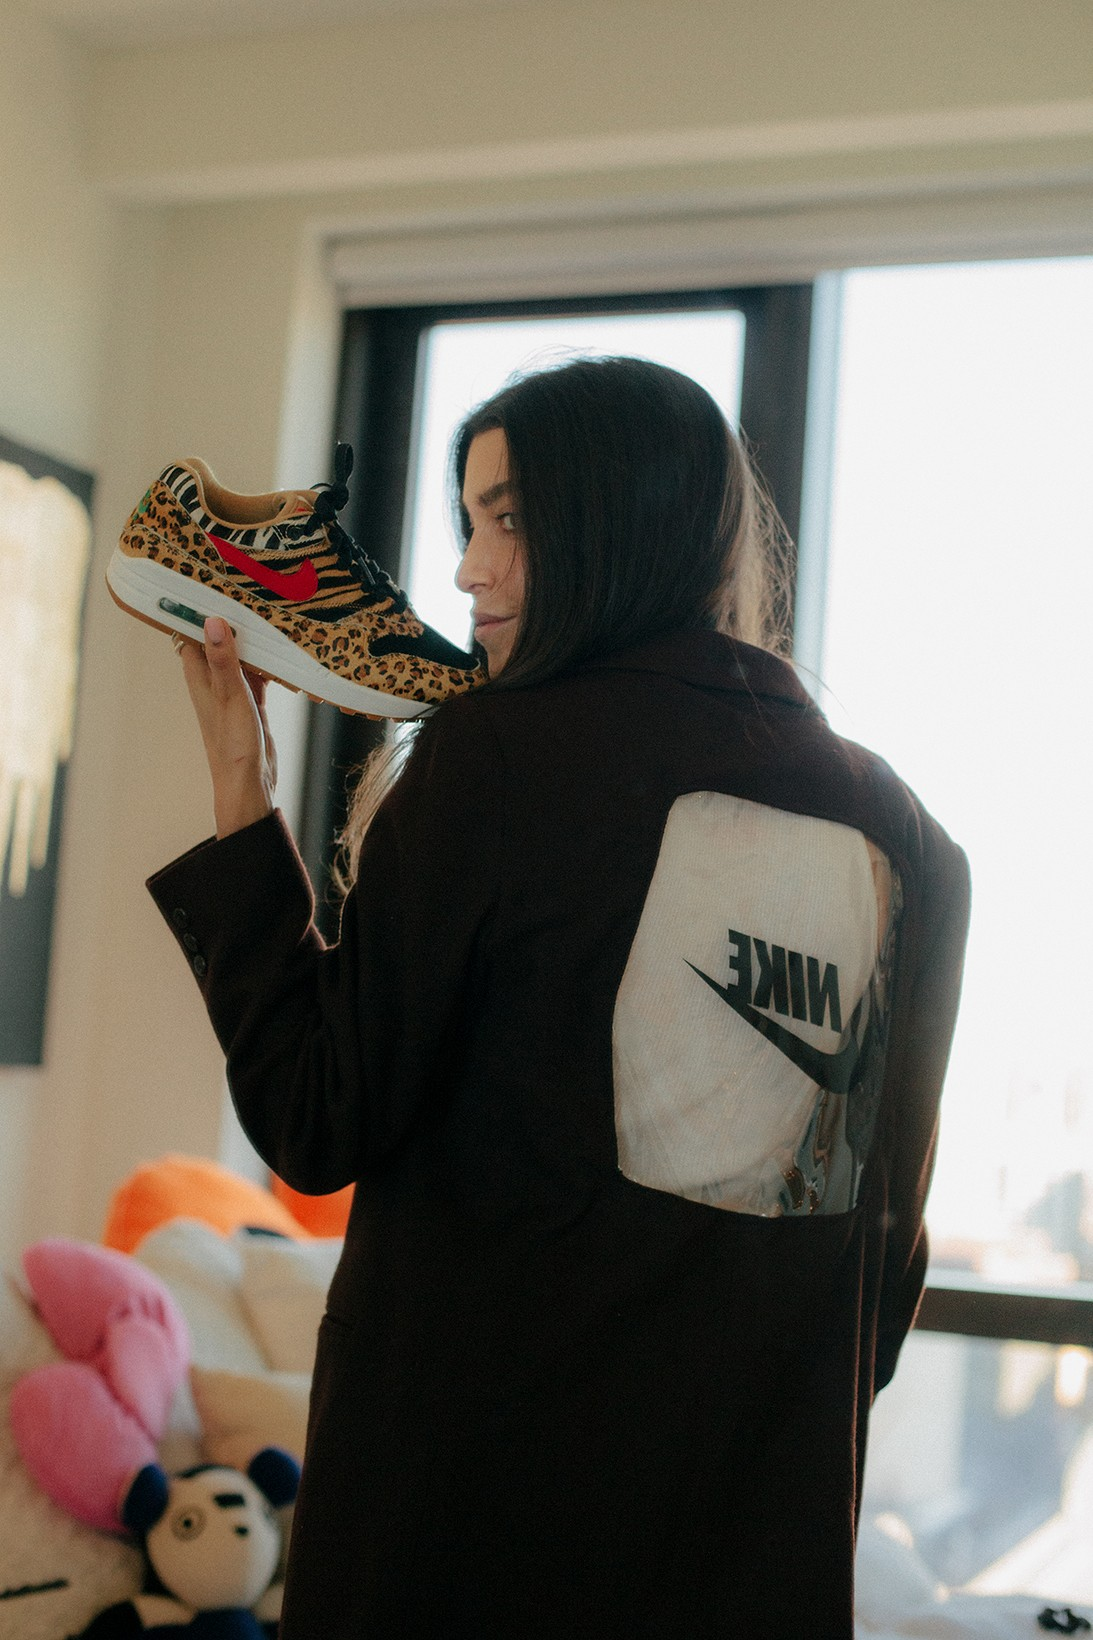 madison blank saks mens fashion director sneaker collector new york city interview nike jordan brand kith home decor shoes